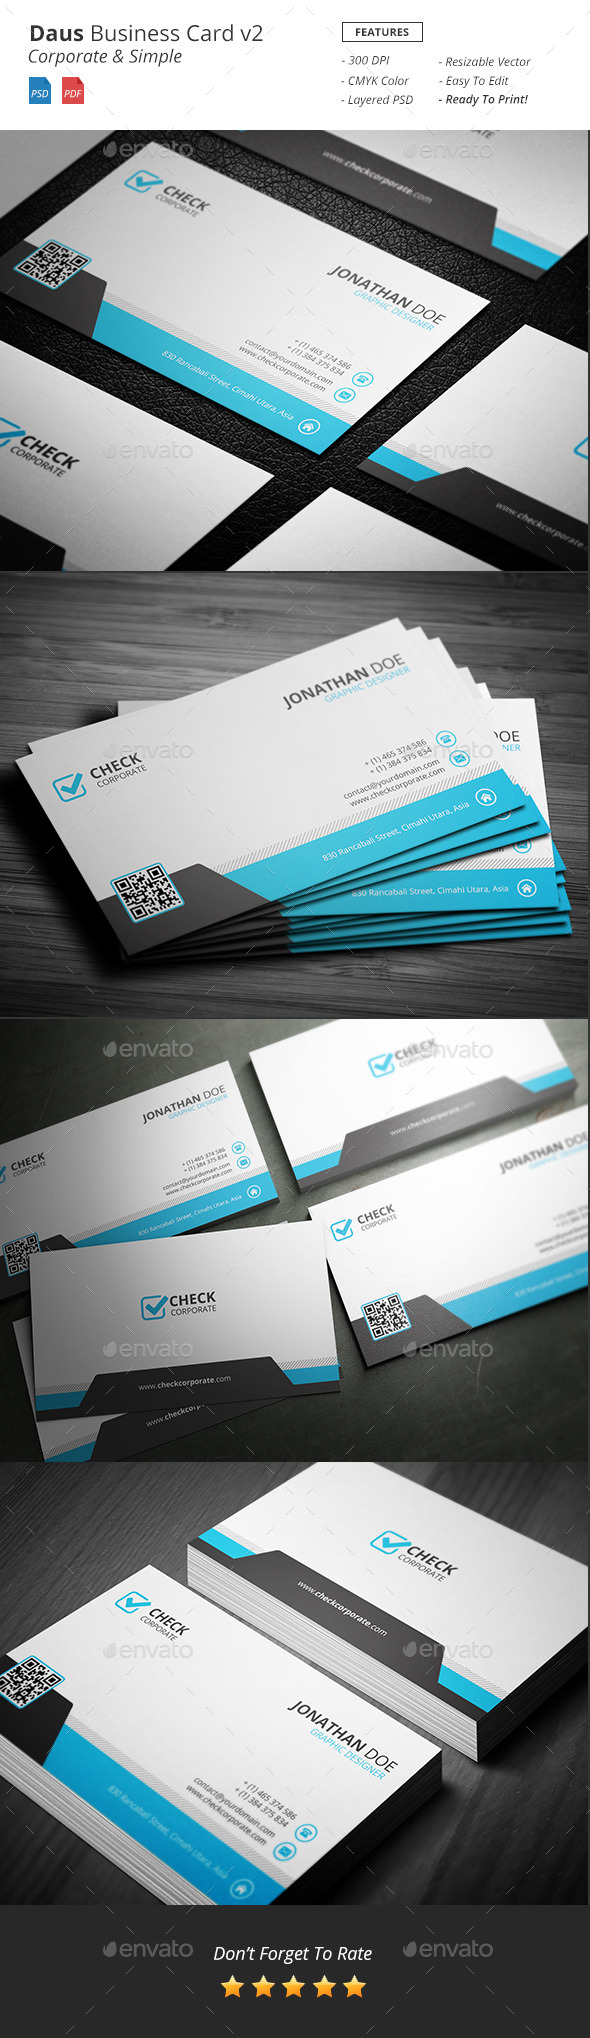 Daus Corporate Business Card v2